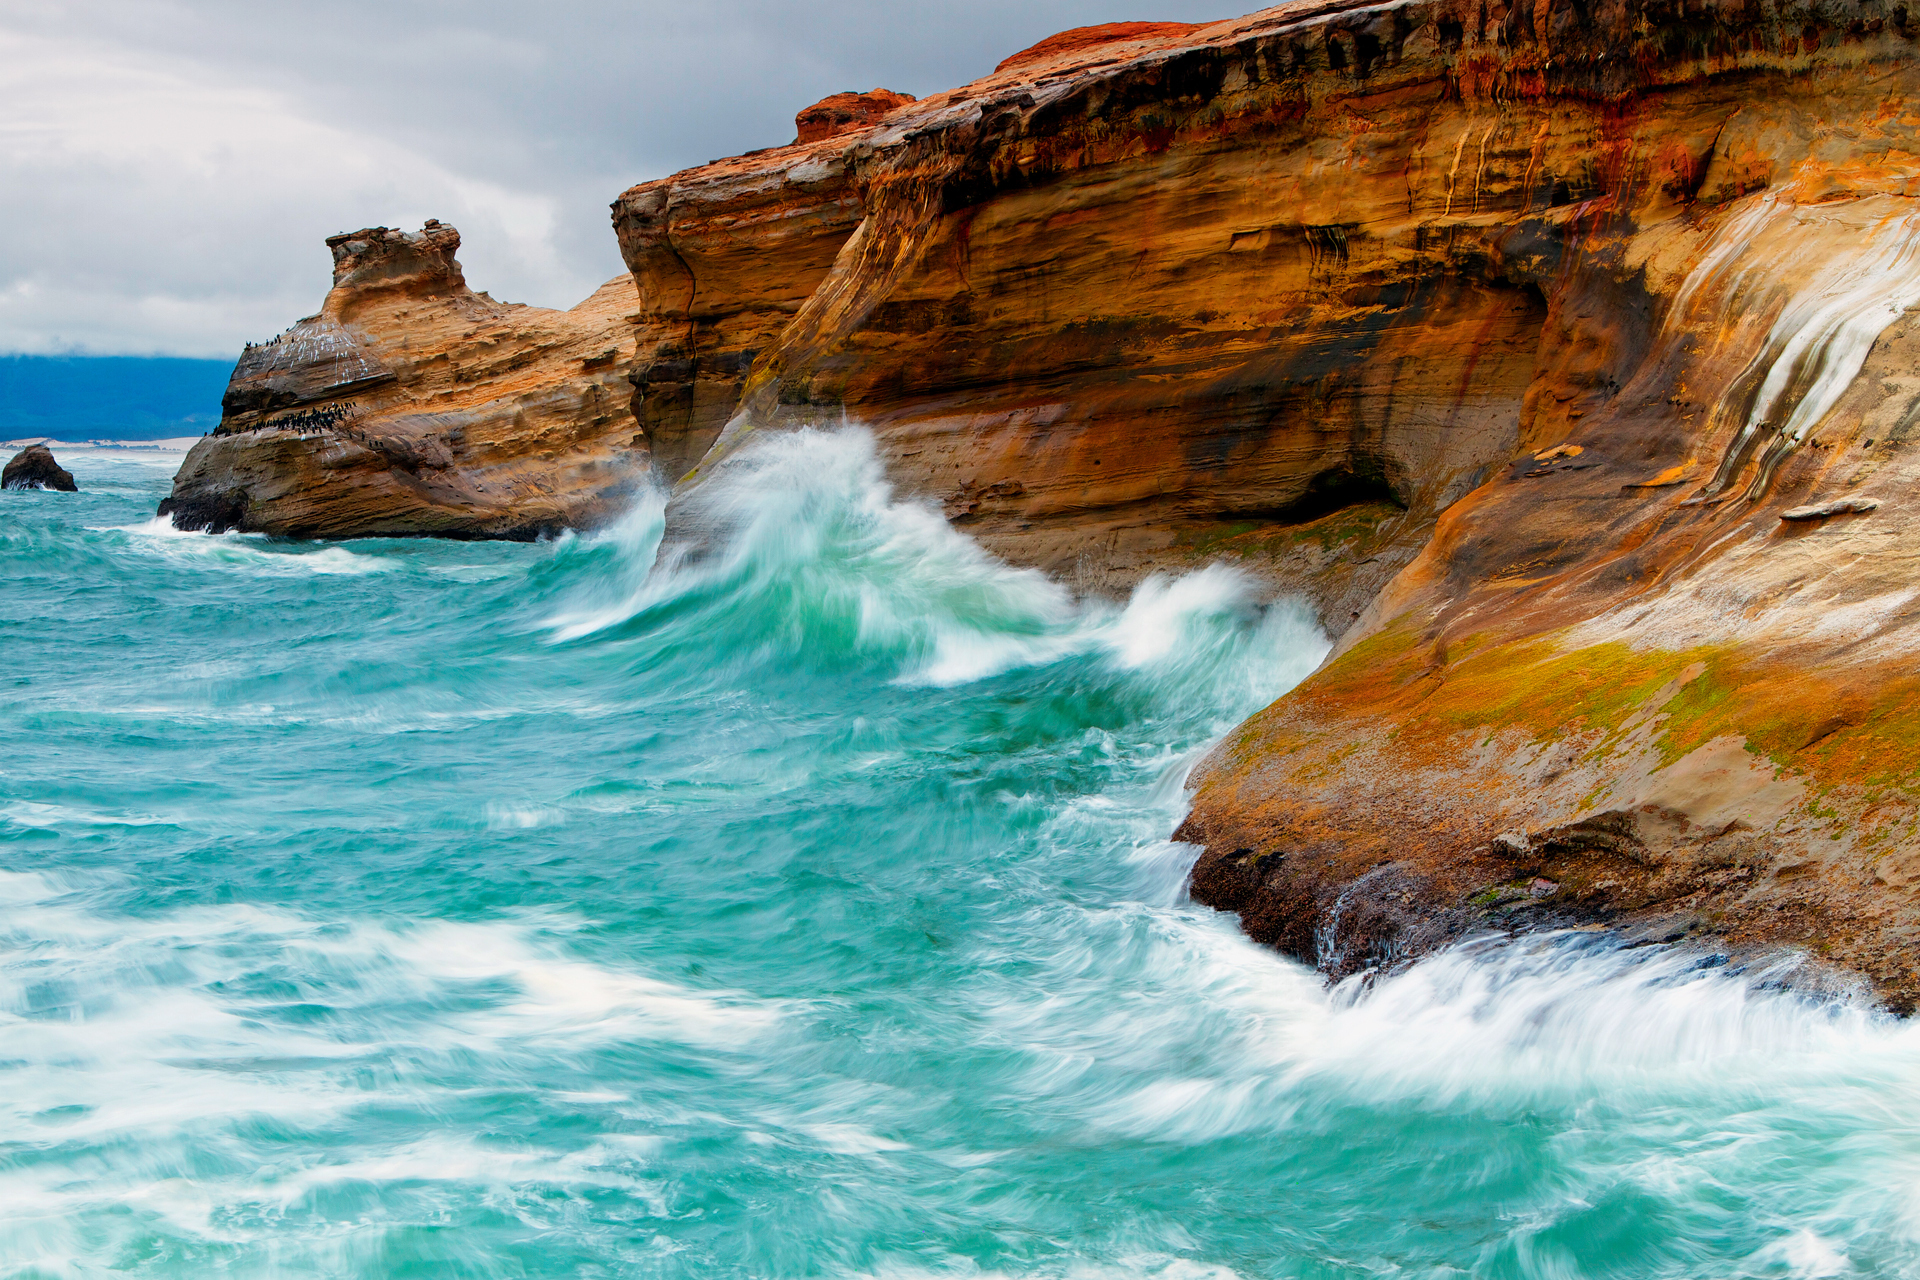 Earth - Wave  - Waves - Sea - Rocks - Bird - Ocean Wallpaper